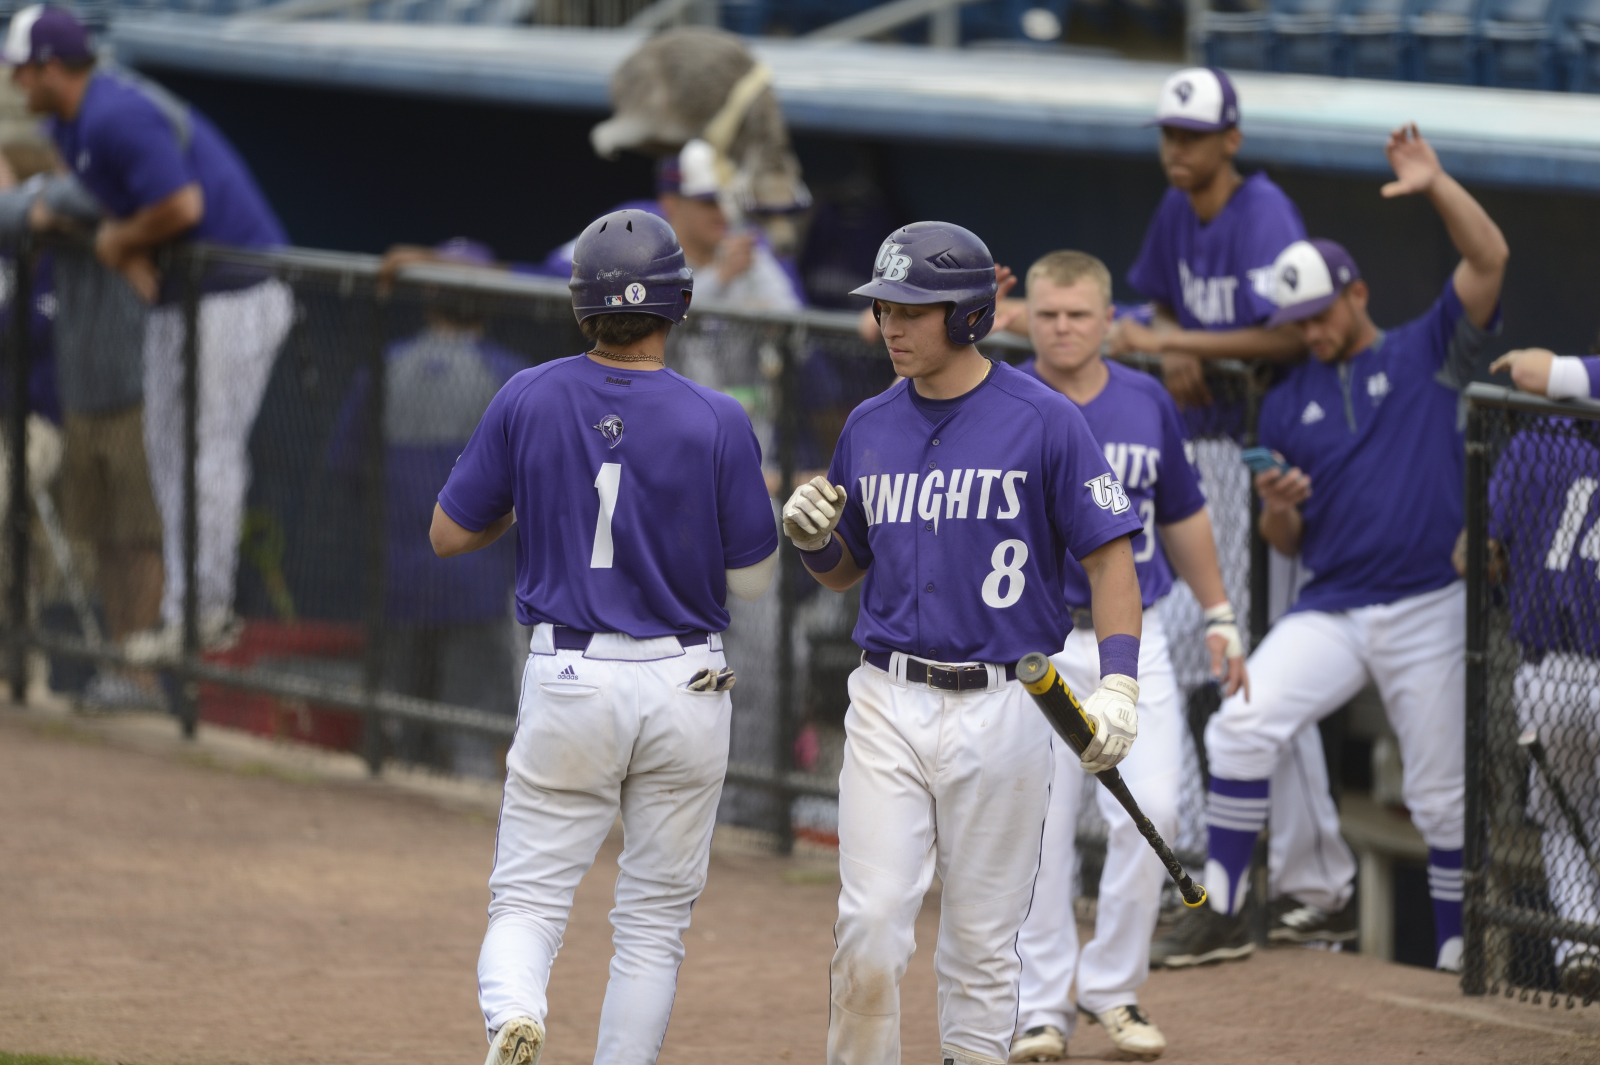 Purple Knights Move To 7-11 In ECC Baseball Play With Saturday Sweep Over Queens (N.Y.) College